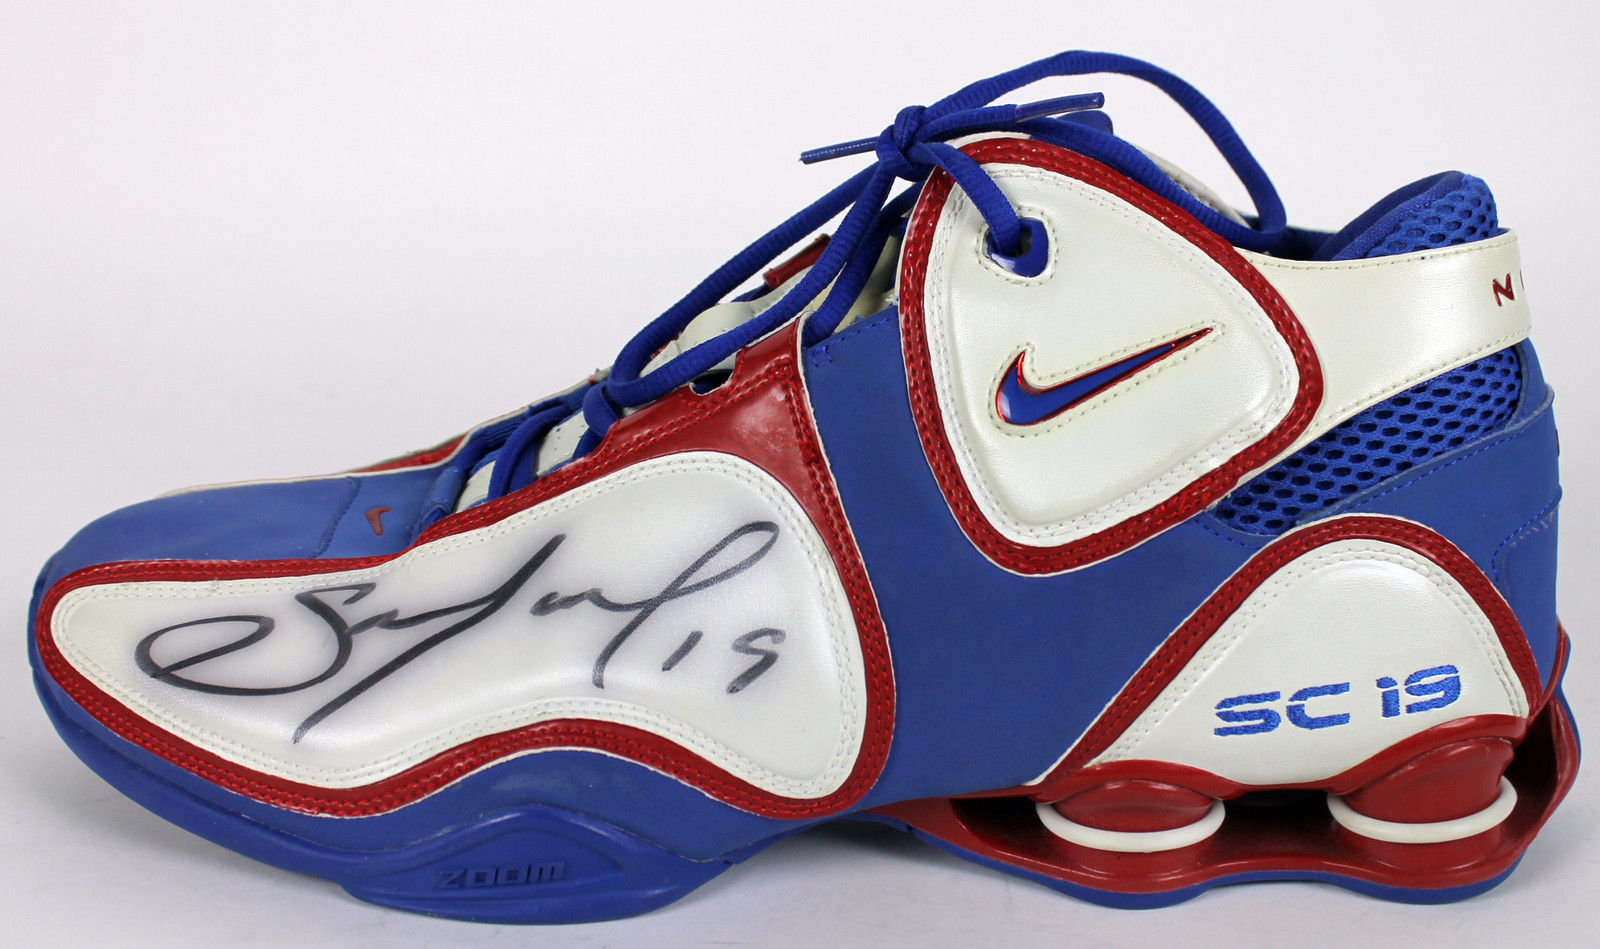 info for 71d18 9471d ... Sam Cassell Game Used   Signed Nike Shox Bounce Basketball Sneakers  (BAS Beckett)